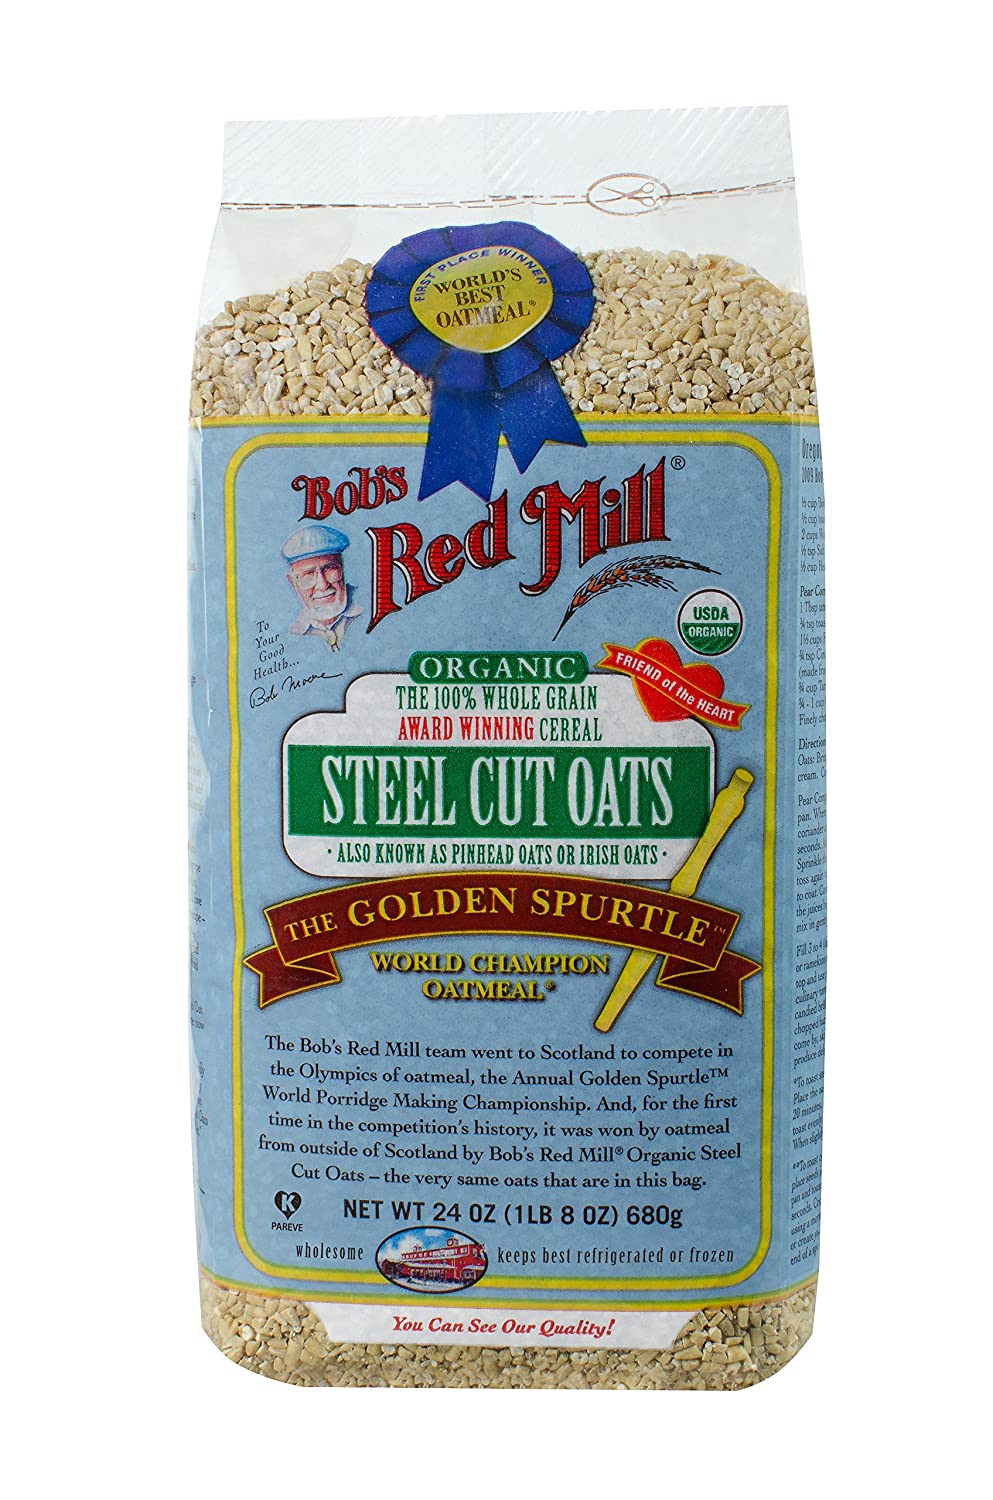 Steel cut oats amazon